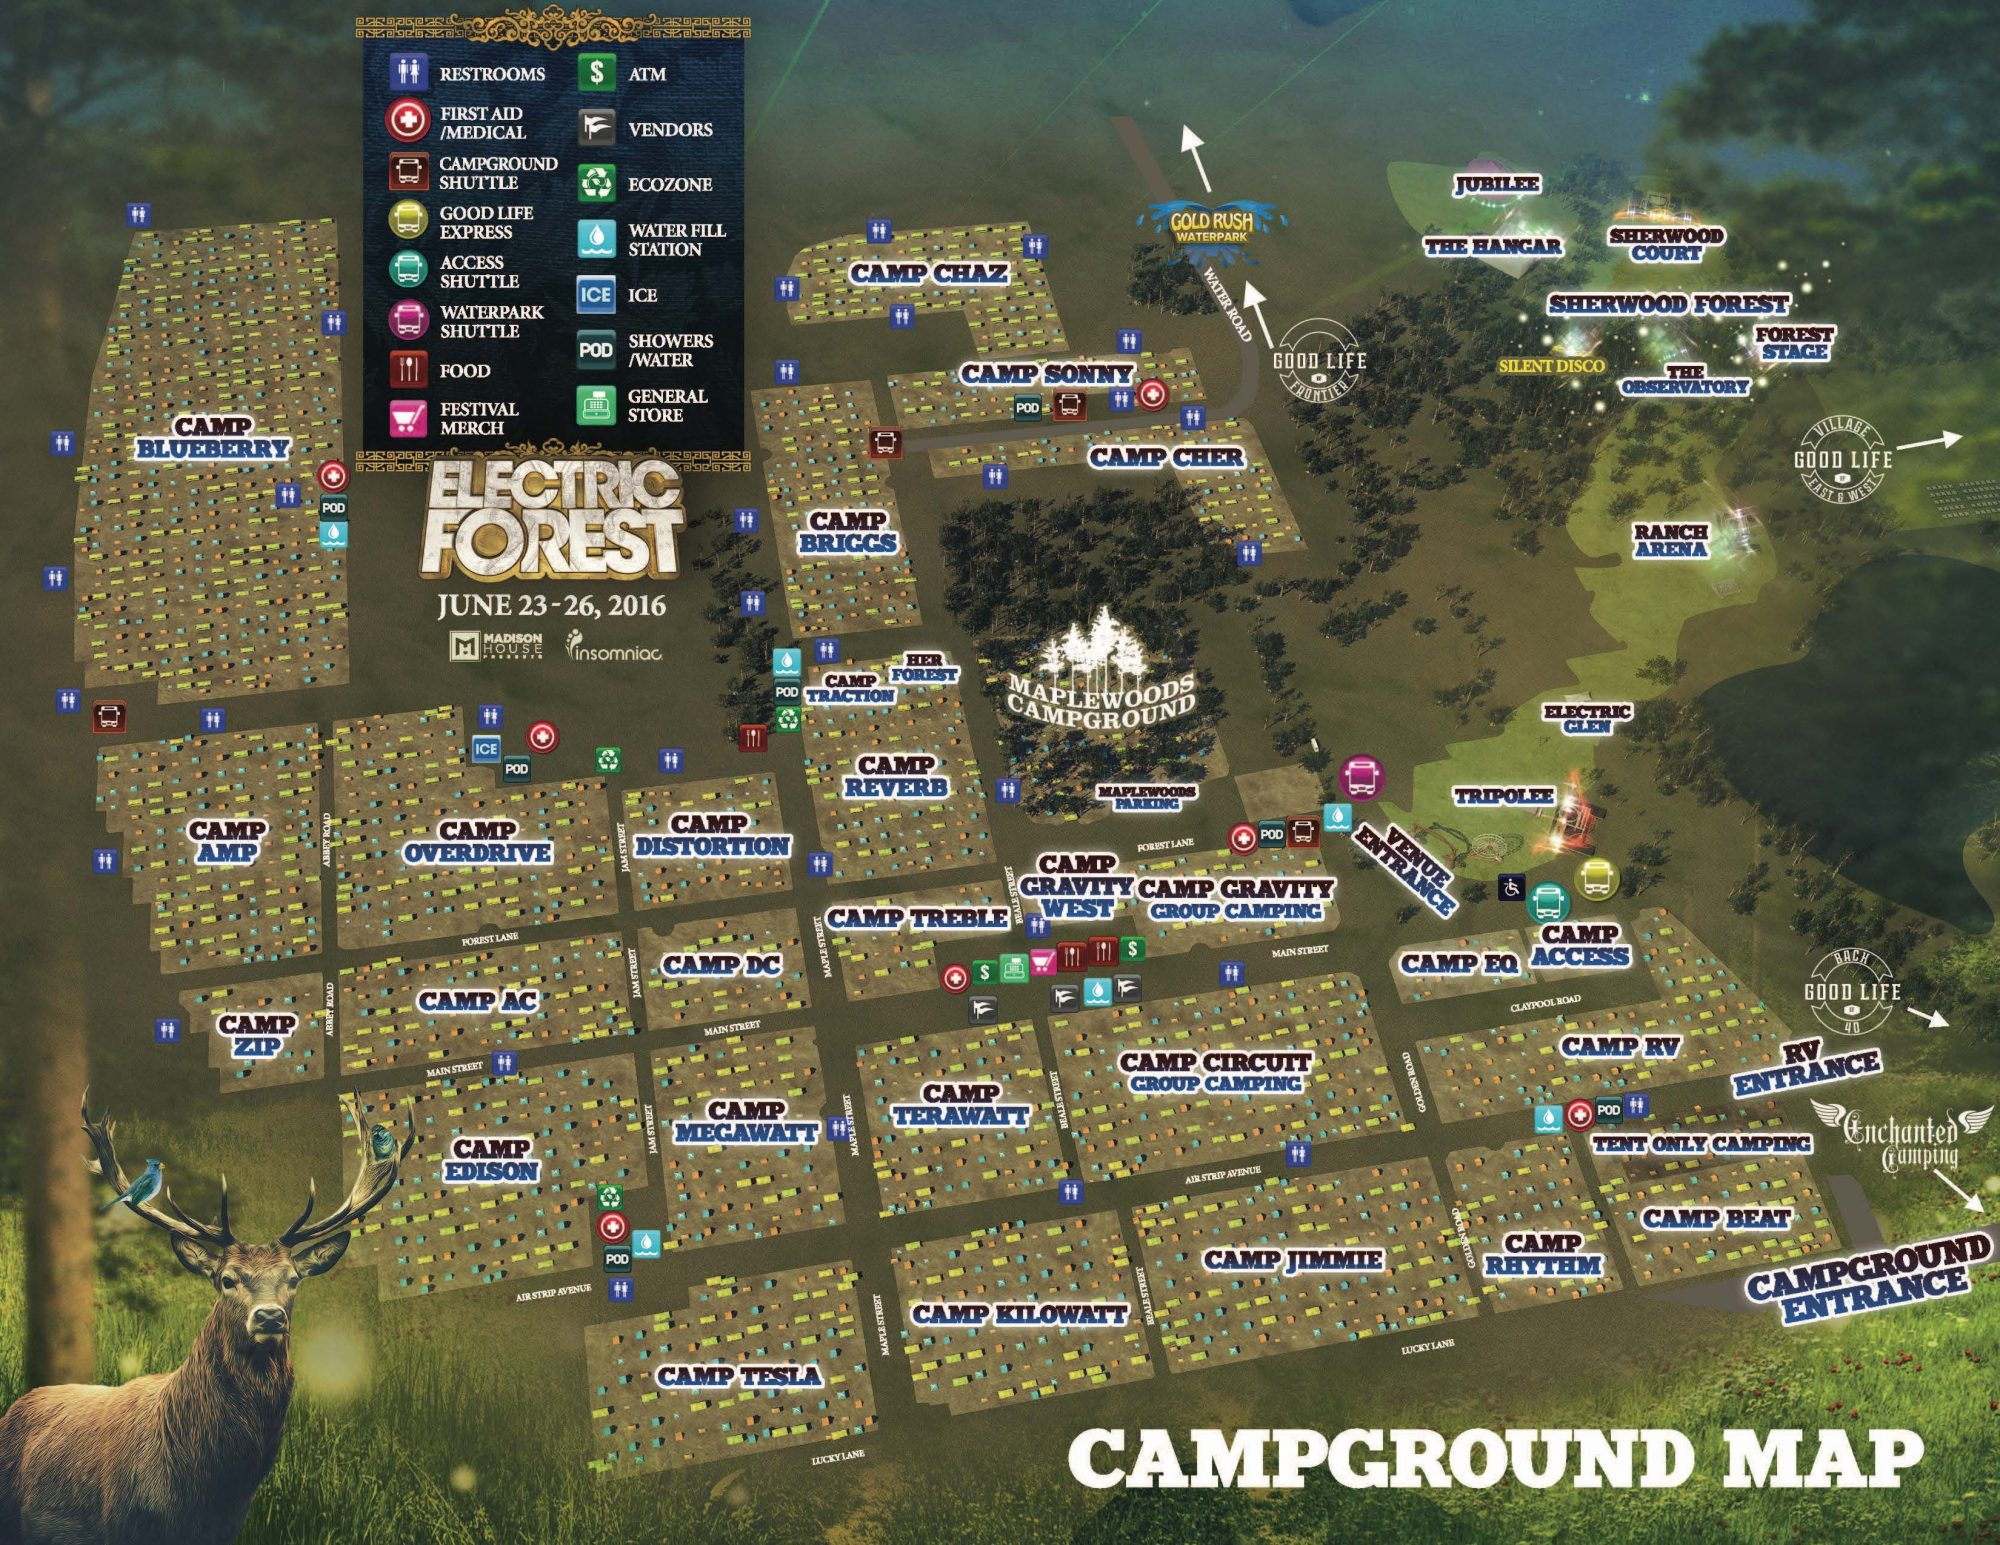 EF2016-Camping-Map-2000x1545